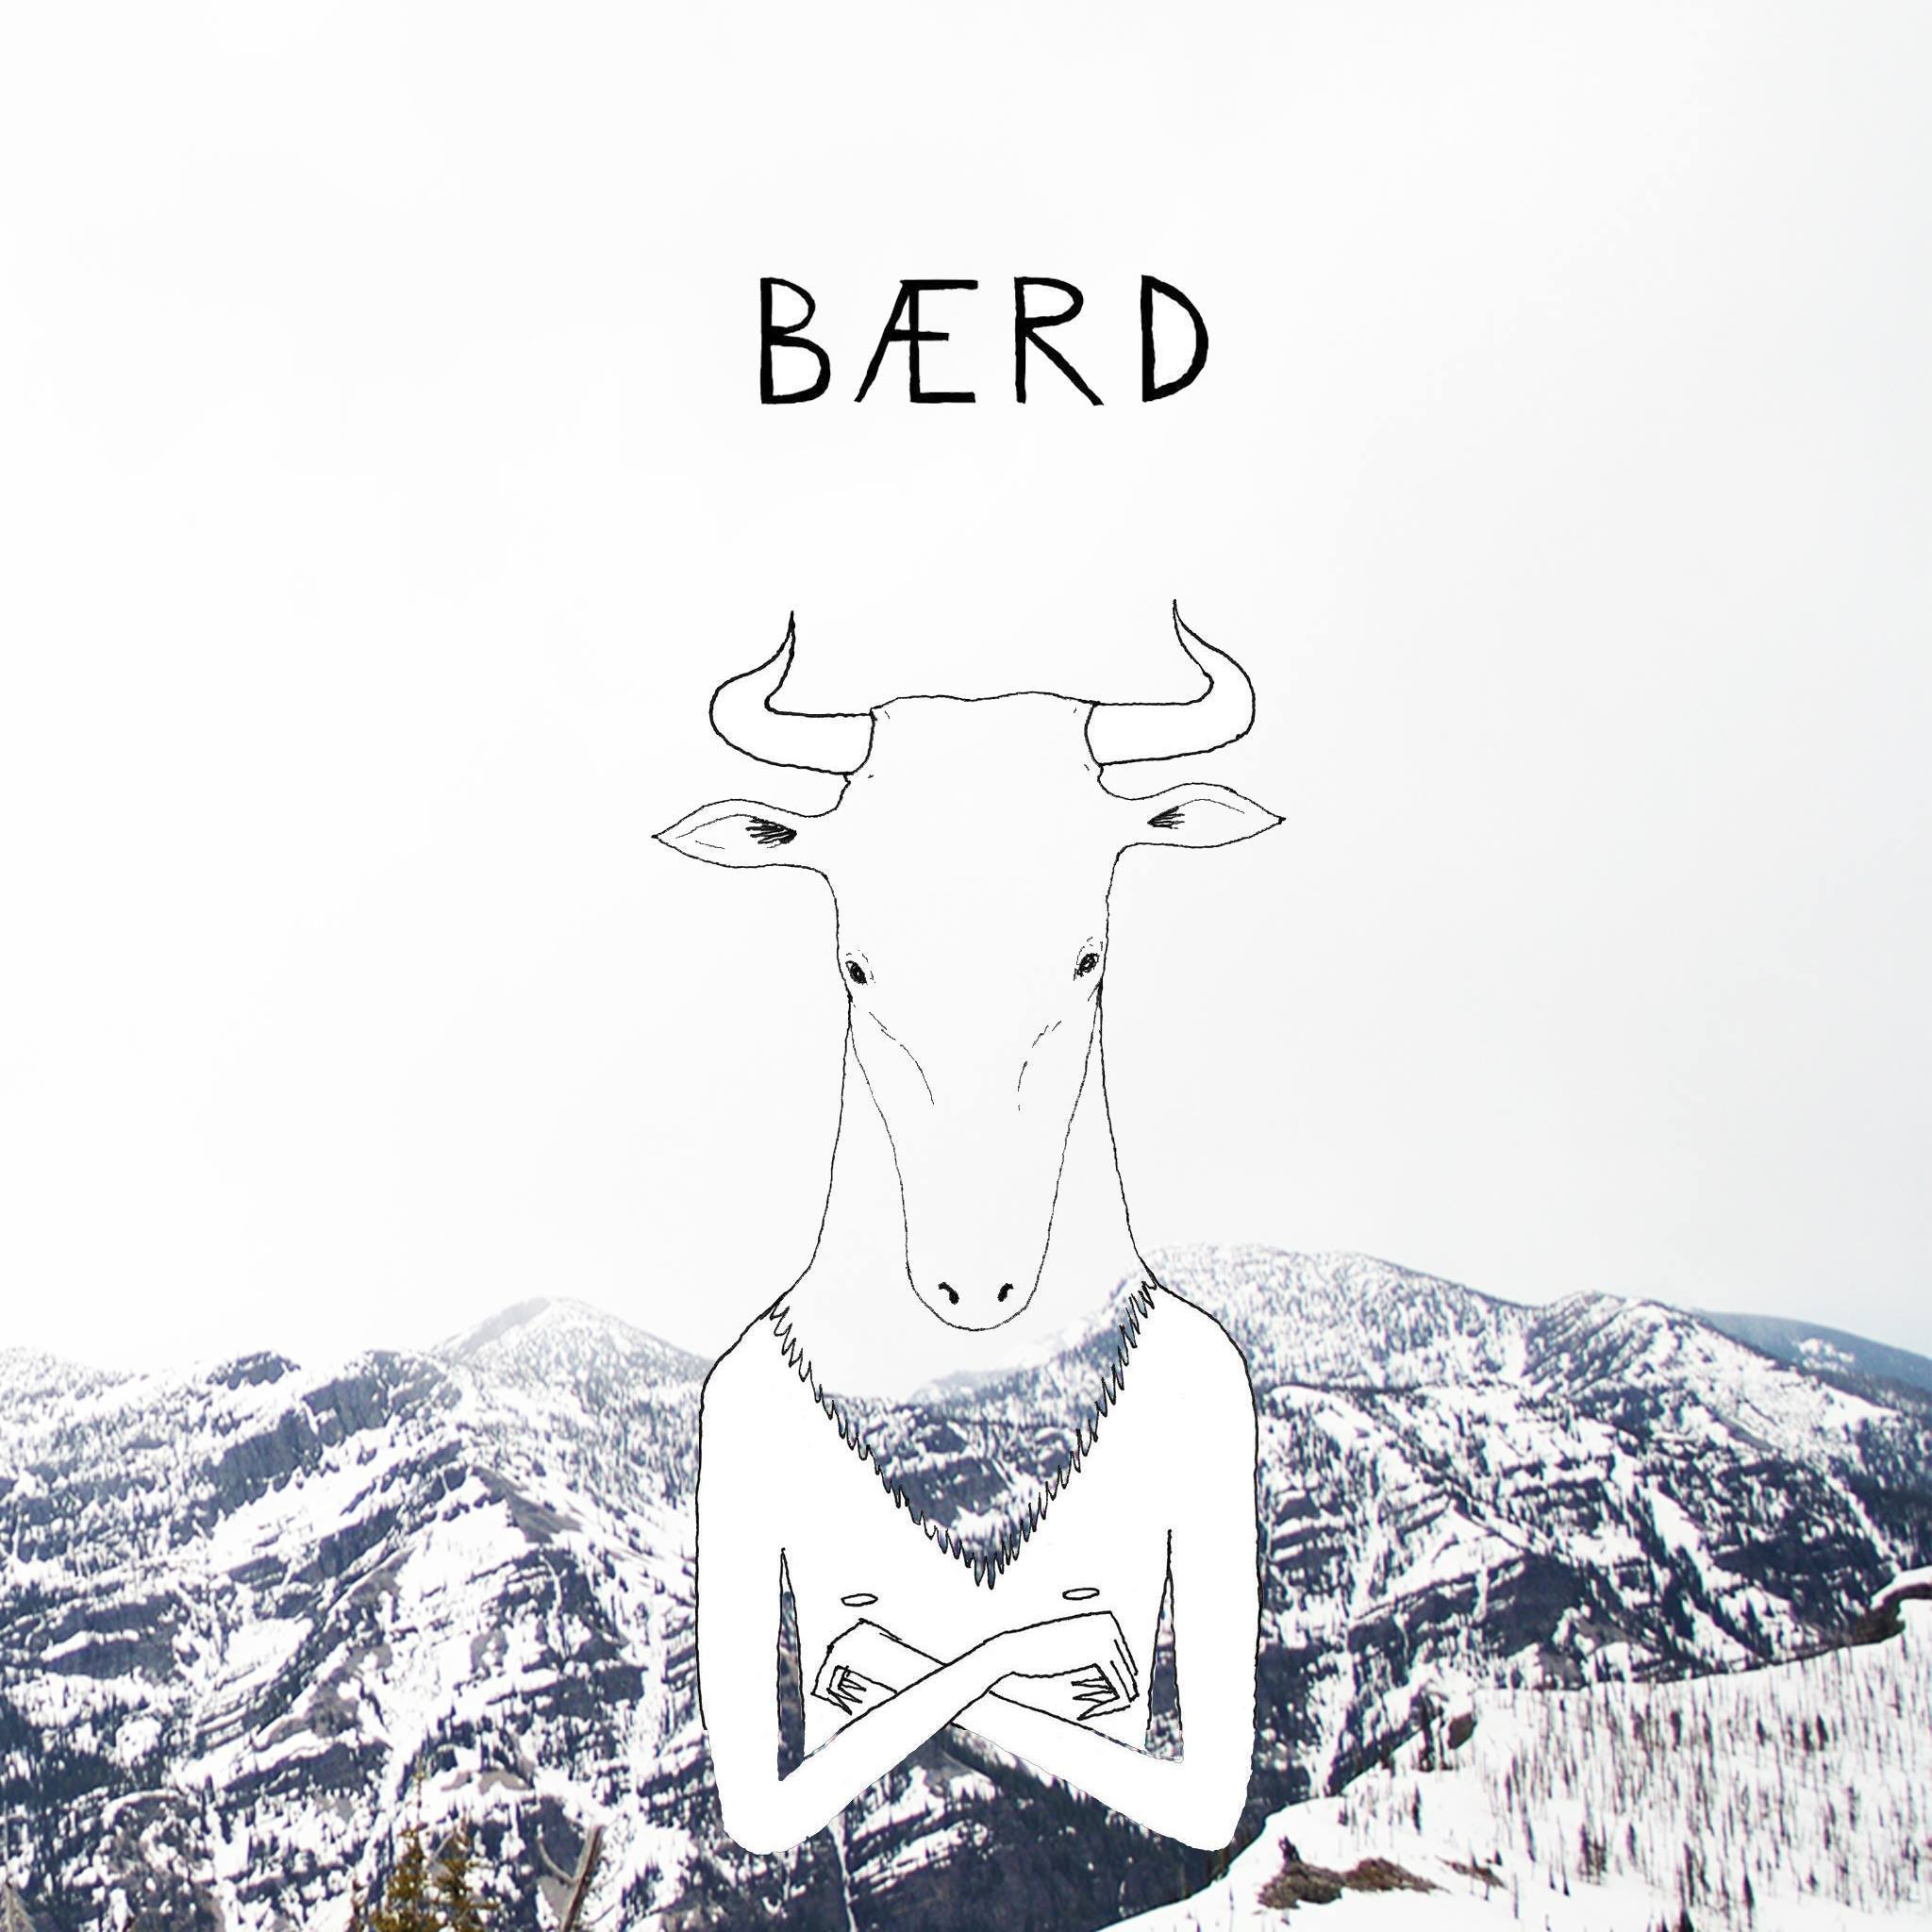 BAERD - BAERD is available on all streaming services -                                                Click HERE to hear BAERD on SoundcloudBAERD is a progressive folk band from Boston, MA. Founded at Berklee College of Music, the group traces together influences from Jazz, Americana, Classical, R&B, and World Music. BAERD's lyricism and instrumental precision is inspired by the likes of Joni Mitchell, Bob Dylan, The Punch Brothers, and Radiohead.Their debut album Progress, released on September 1st, 2016, explores the fragility of the moment and the relationship between people and time. Progress is a comment on the vastness of our own world and an immersive dive for BAERD fans new and old. On the precipice of innovative folk, BAERD takes a seat among contemporaries Andrew Bird, Punch Brothers, Nickel Creek, The Goat Rodeo Sessions, and Department of Eagles. Through their music, BAERD strives to help people make better sense of themselves and others in this great, big world.